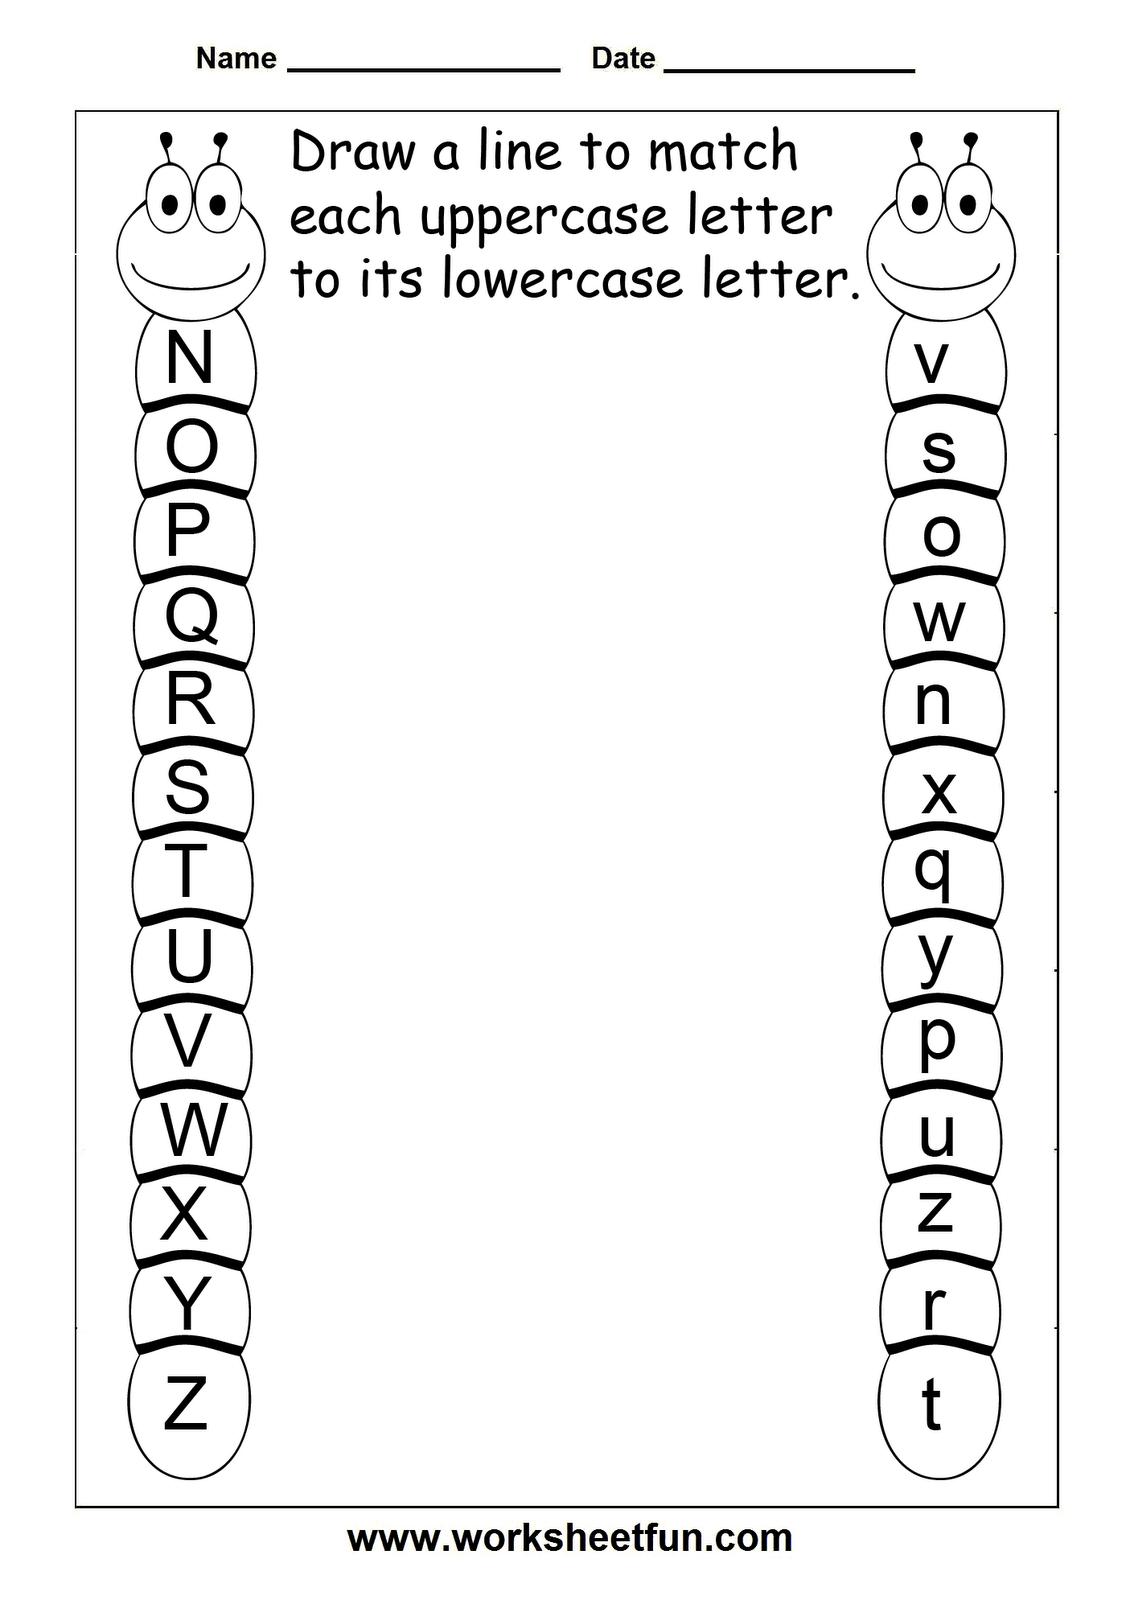 Worksheets Abc Worksheets For Pre-k worksheetfun free printable worksheets 1st grade pinterest worksheets